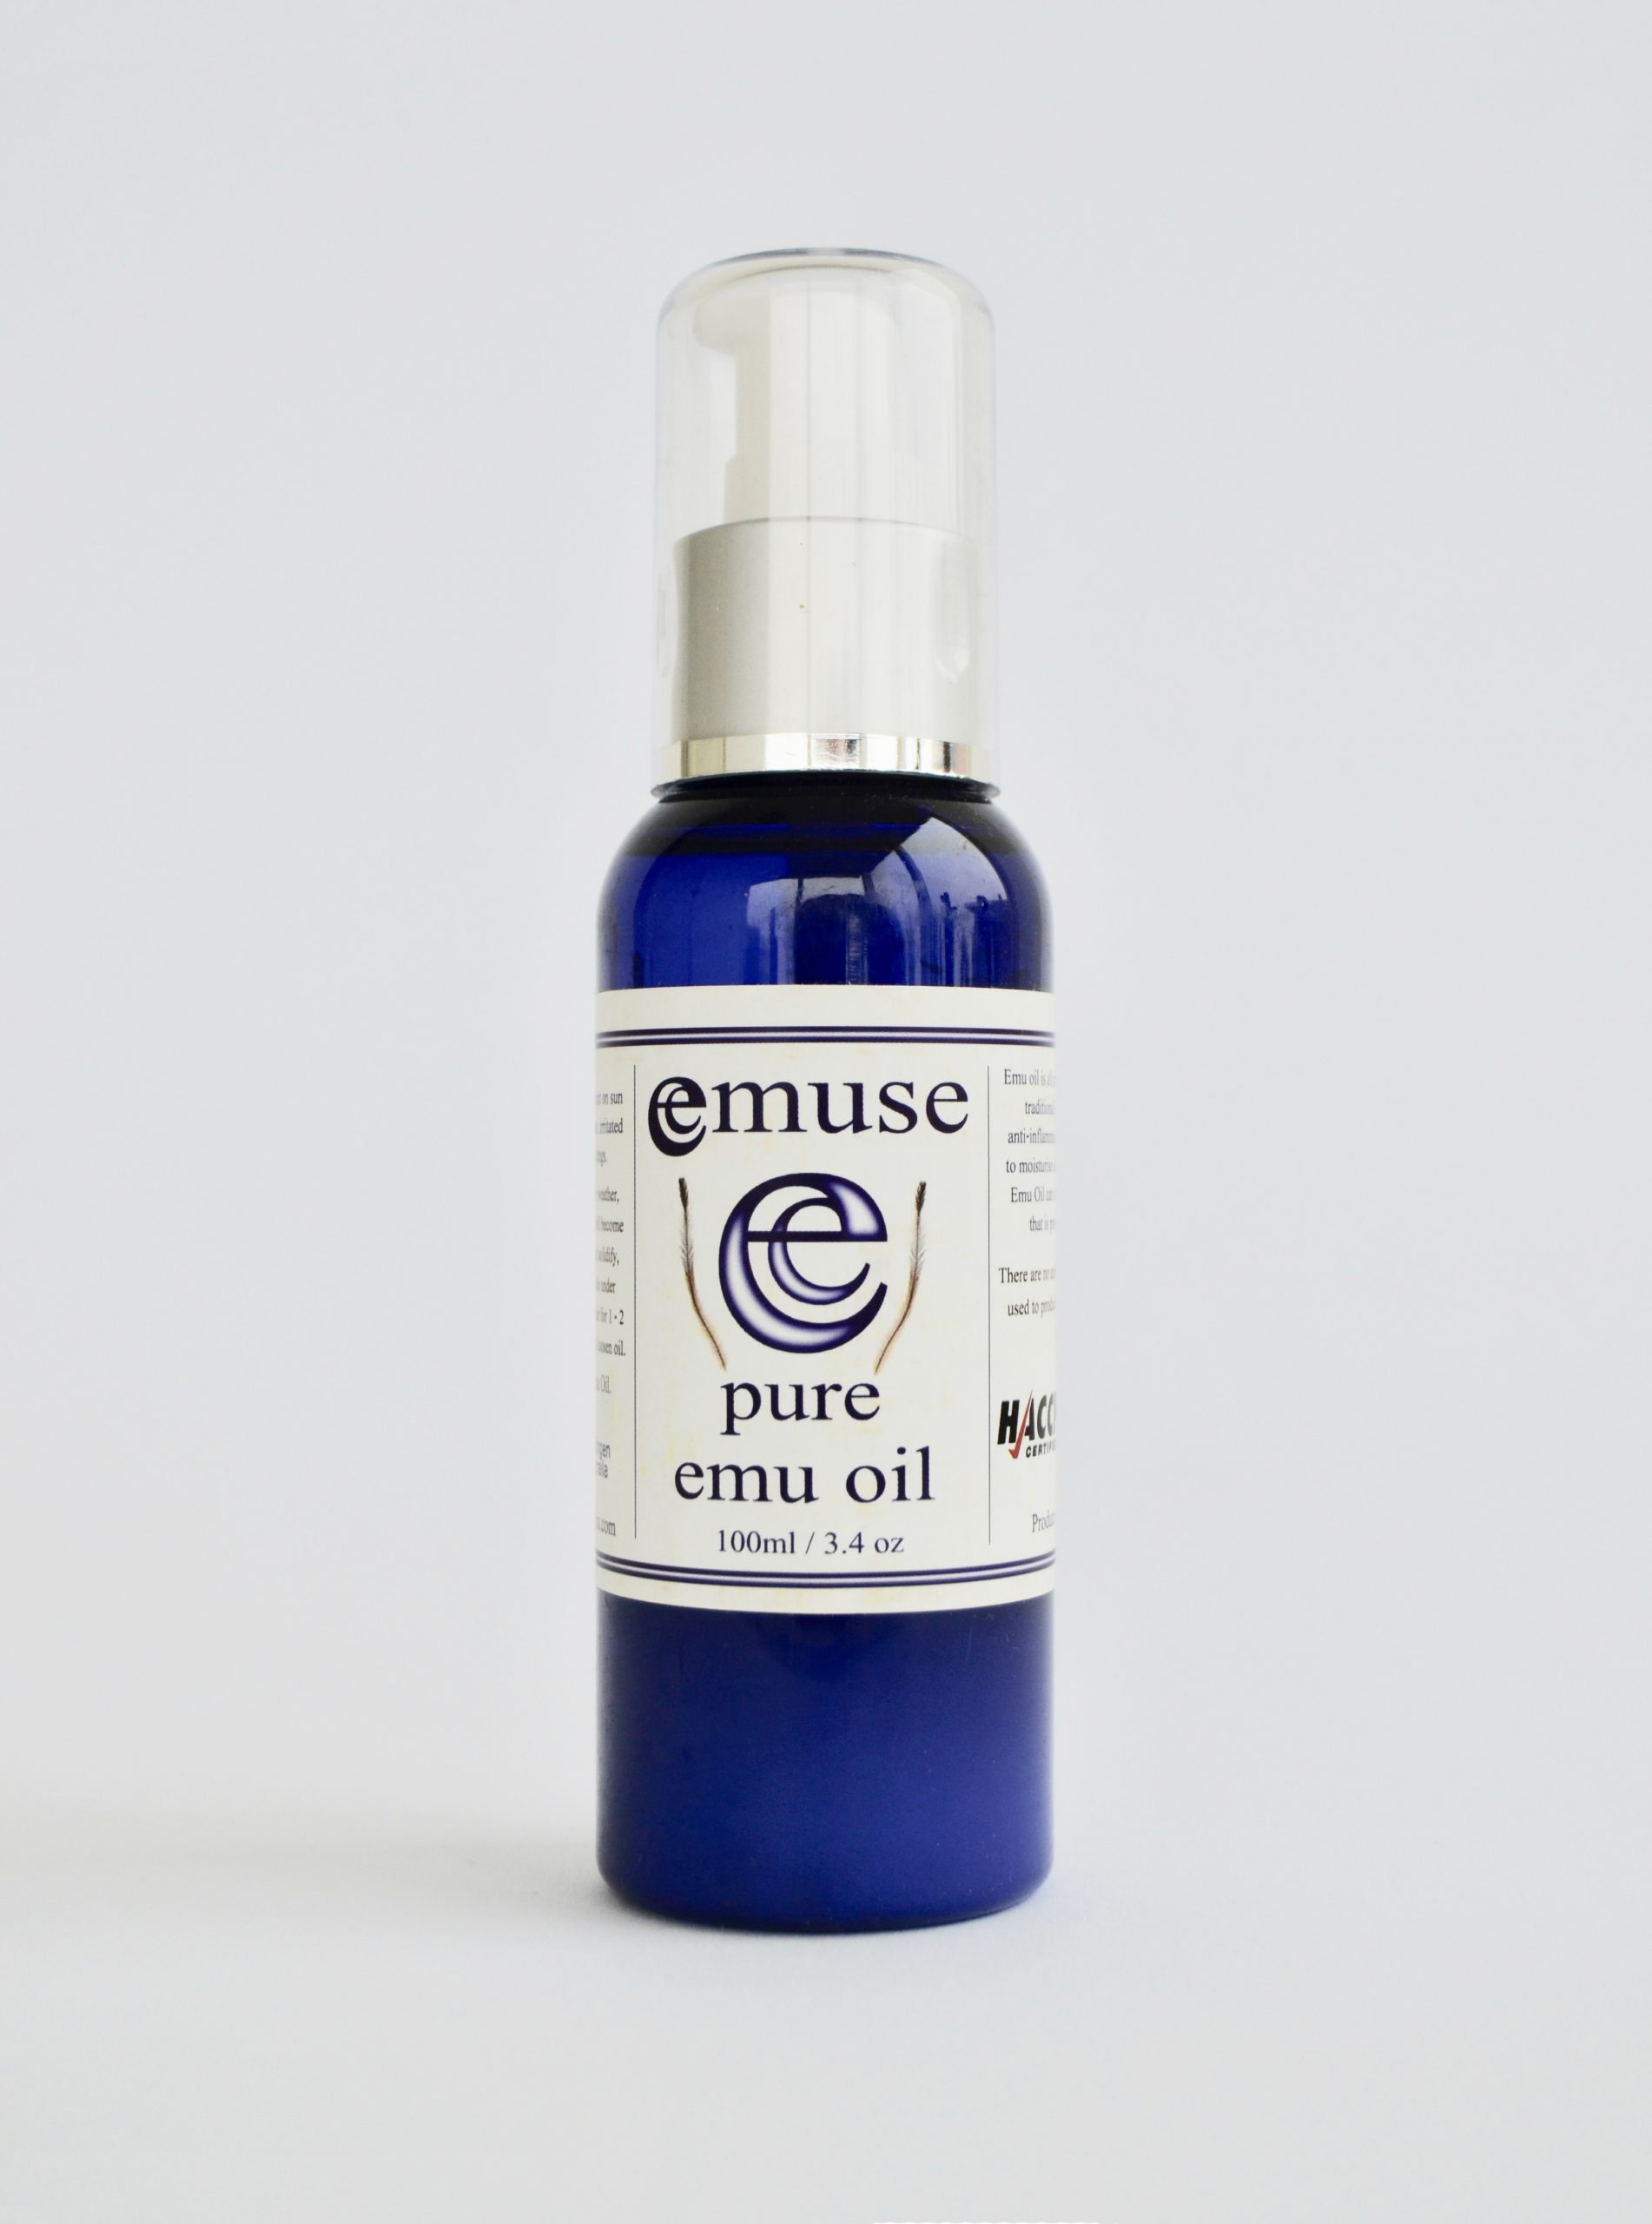 Emuse 100% pure Emoe Olie 100ml